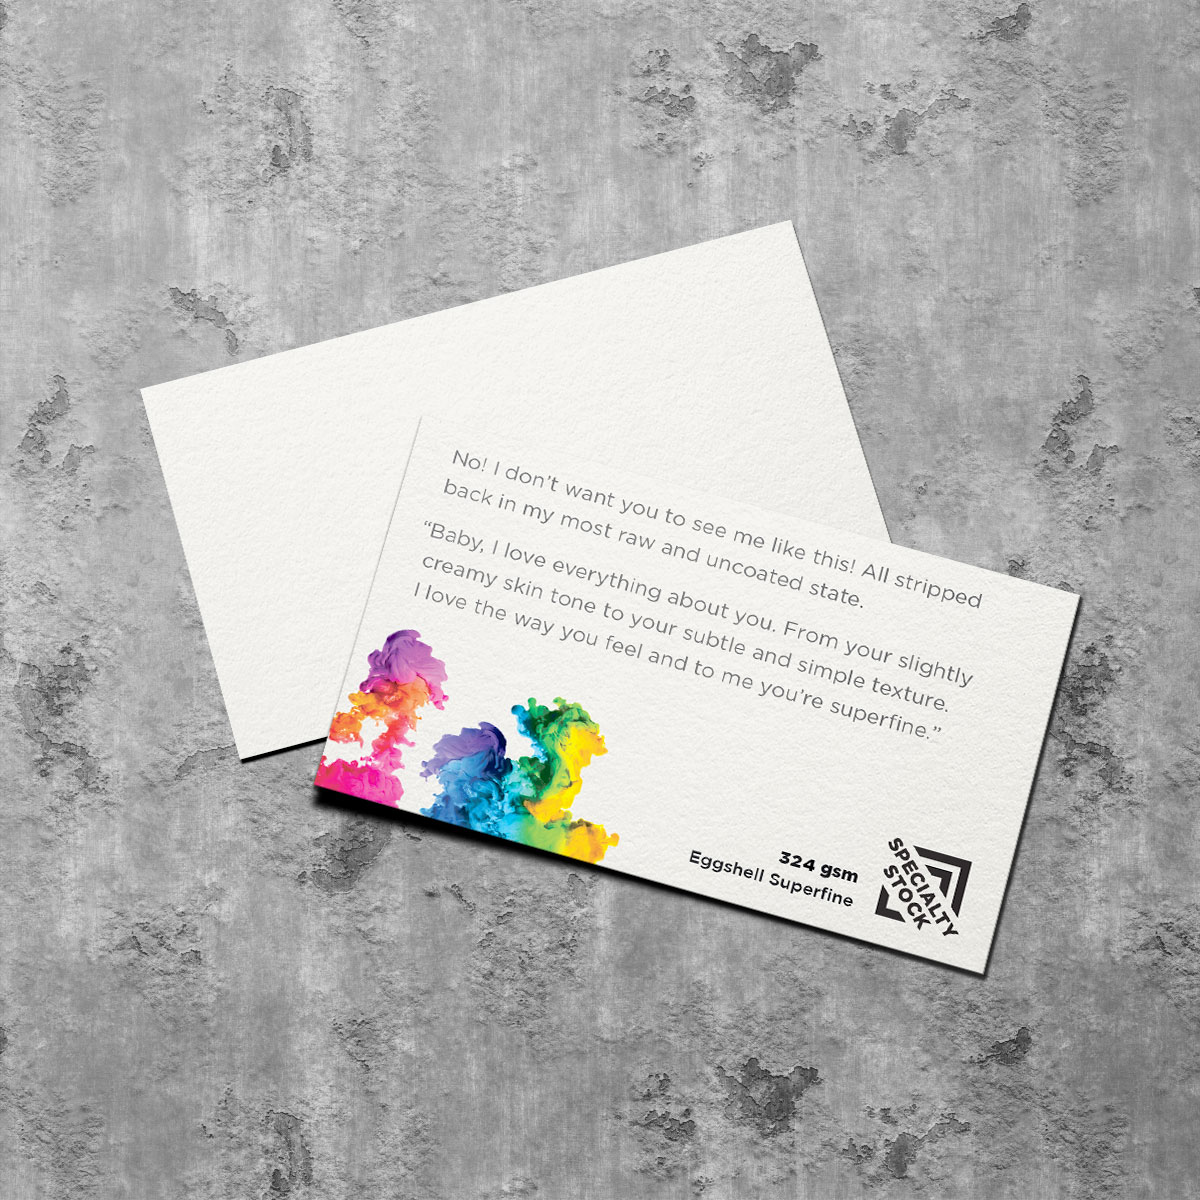 324gsm Eggshell Superfine specialty business card